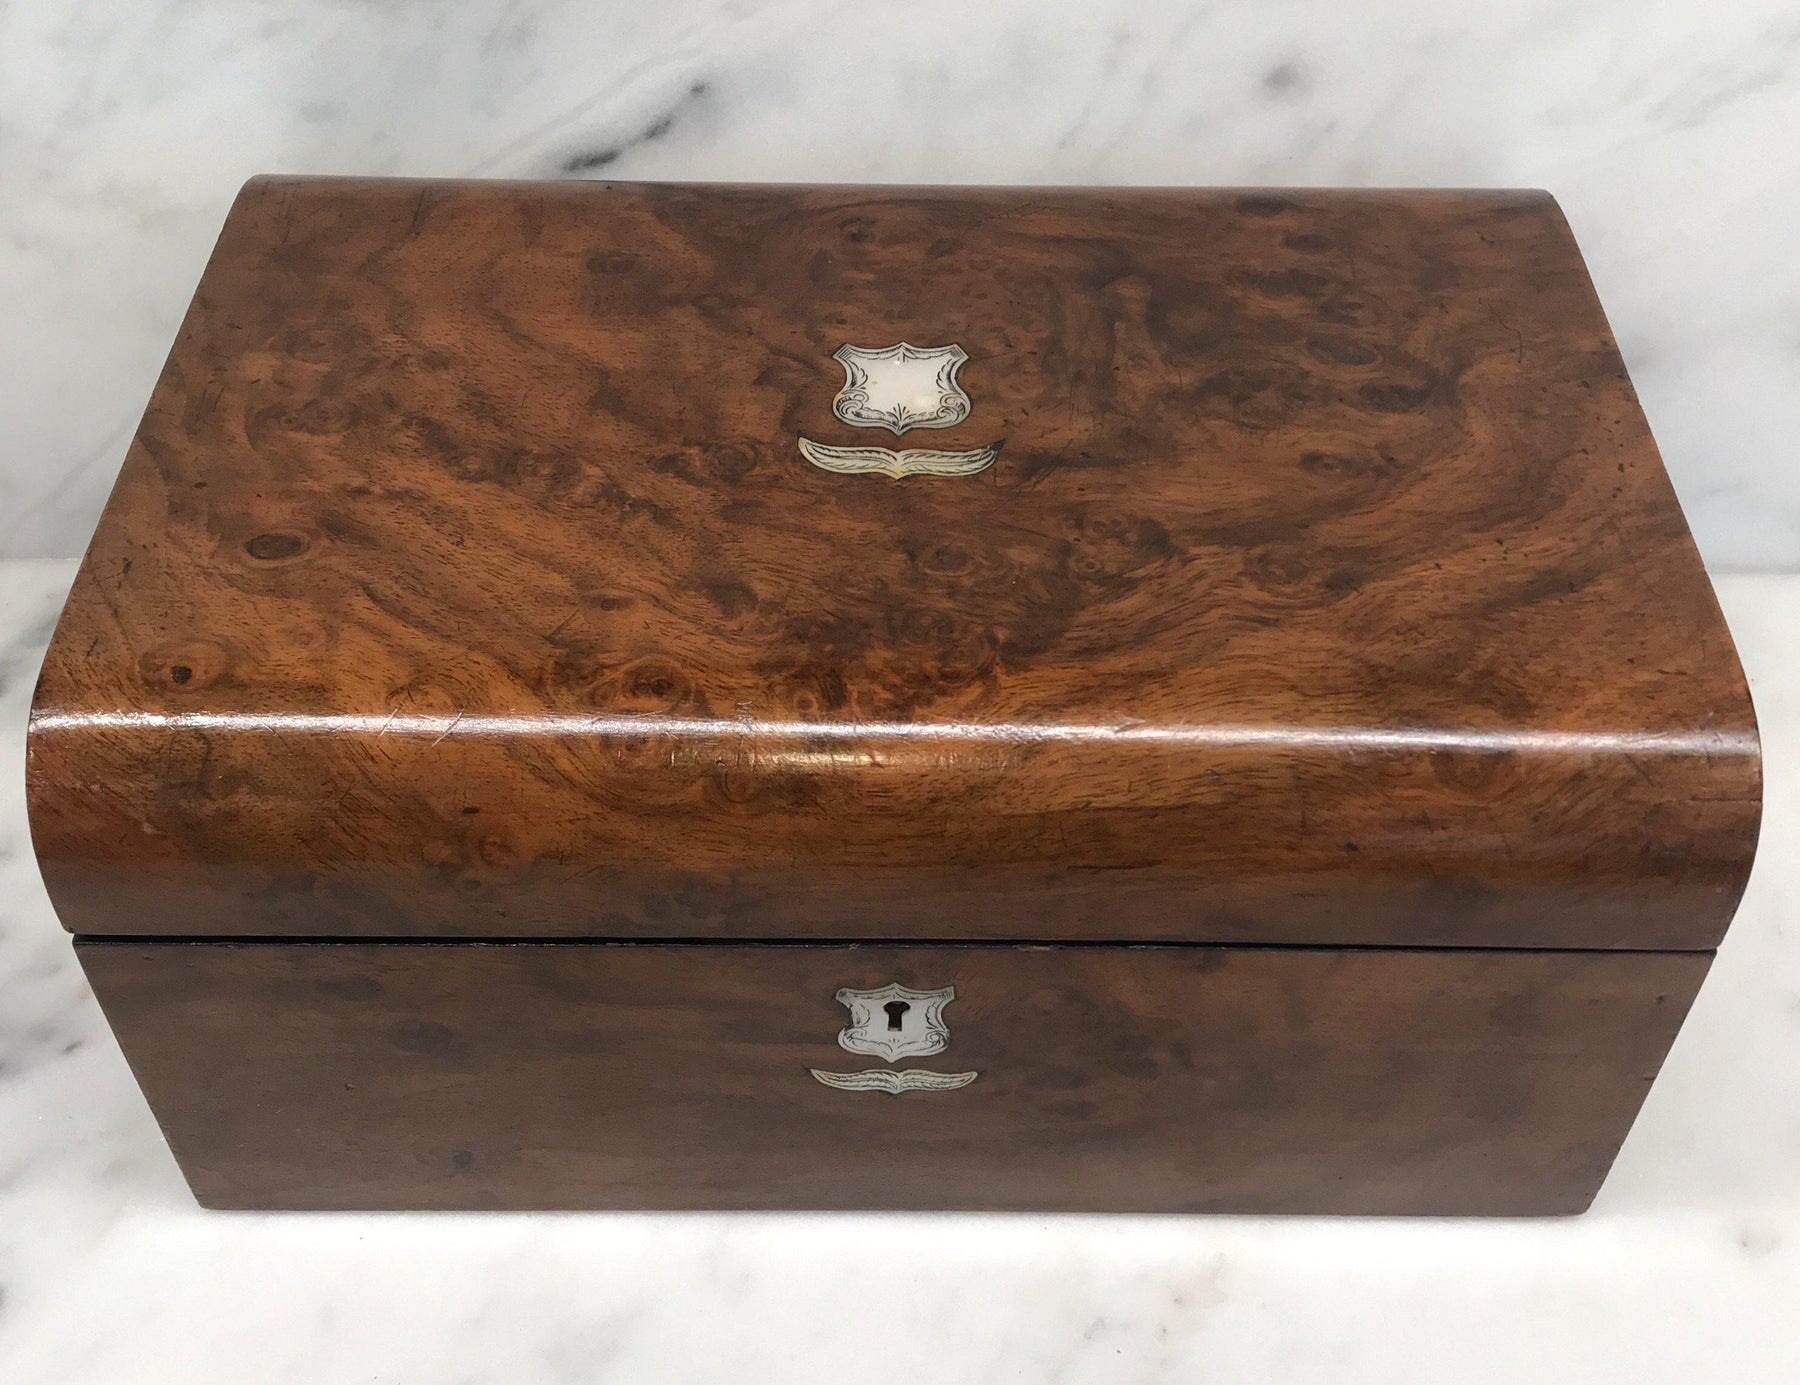 For Sale: British Walnut Writing Box/Slope/Desk with Original Embossed Desk Leather, Mother of Pearl Escutcheon and Crest